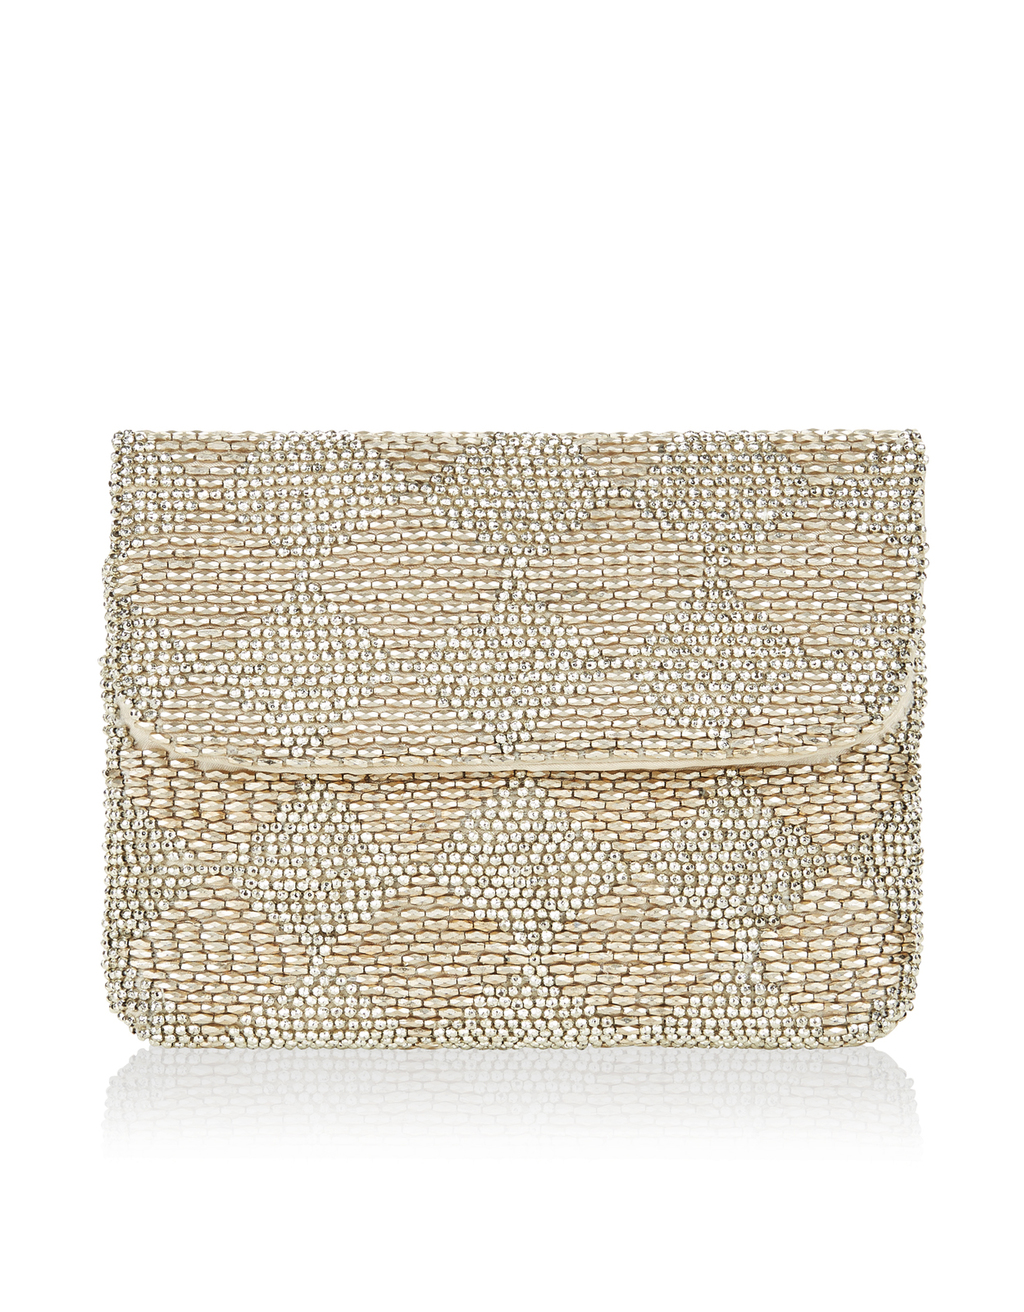 Luna Beaded Clutch Bag - predominant colour: gold; occasions: evening, occasion; type of pattern: standard; style: clutch; length: hand carry; size: standard; material: fabric; embellishment: beading; pattern: plain; finish: metallic; season: s/s 2016; wardrobe: event